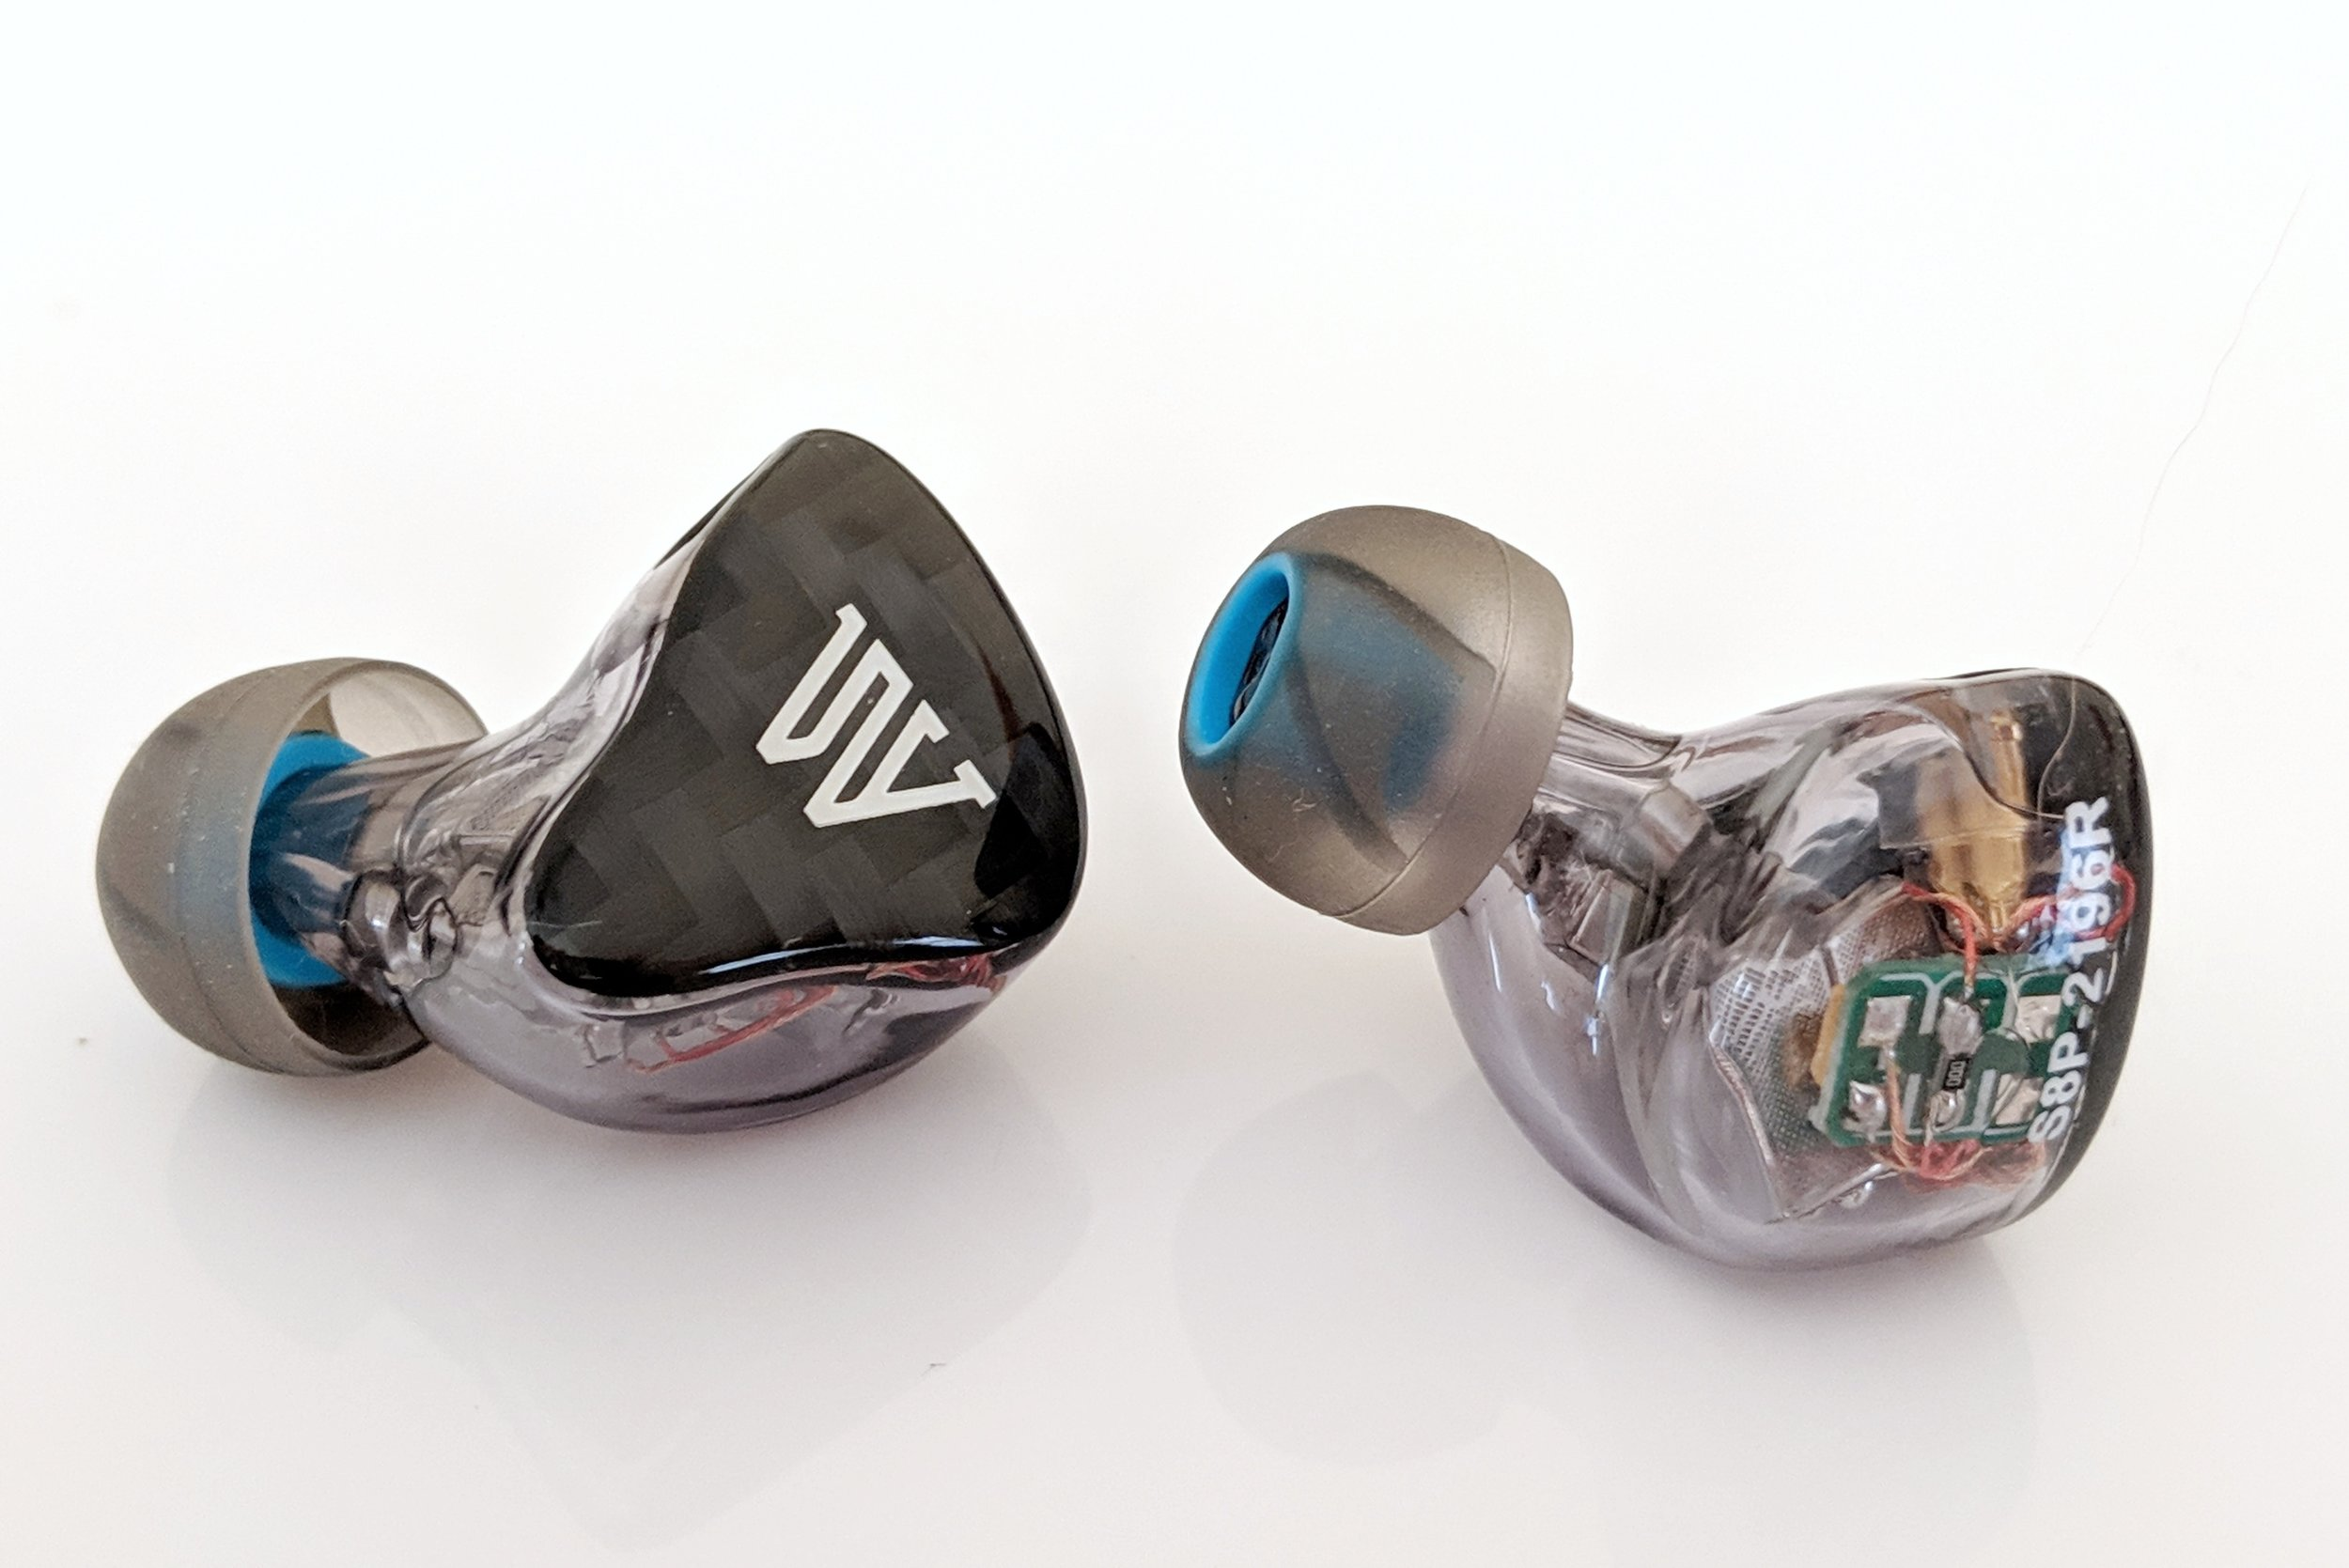 Another beautiful photo of the S8P and the setup of the balanced armature drivers on the insides of the IEM housing. Fearless Audio offers a number of different customization options at an additional const but we were very impressed with the design that we were sent for review.